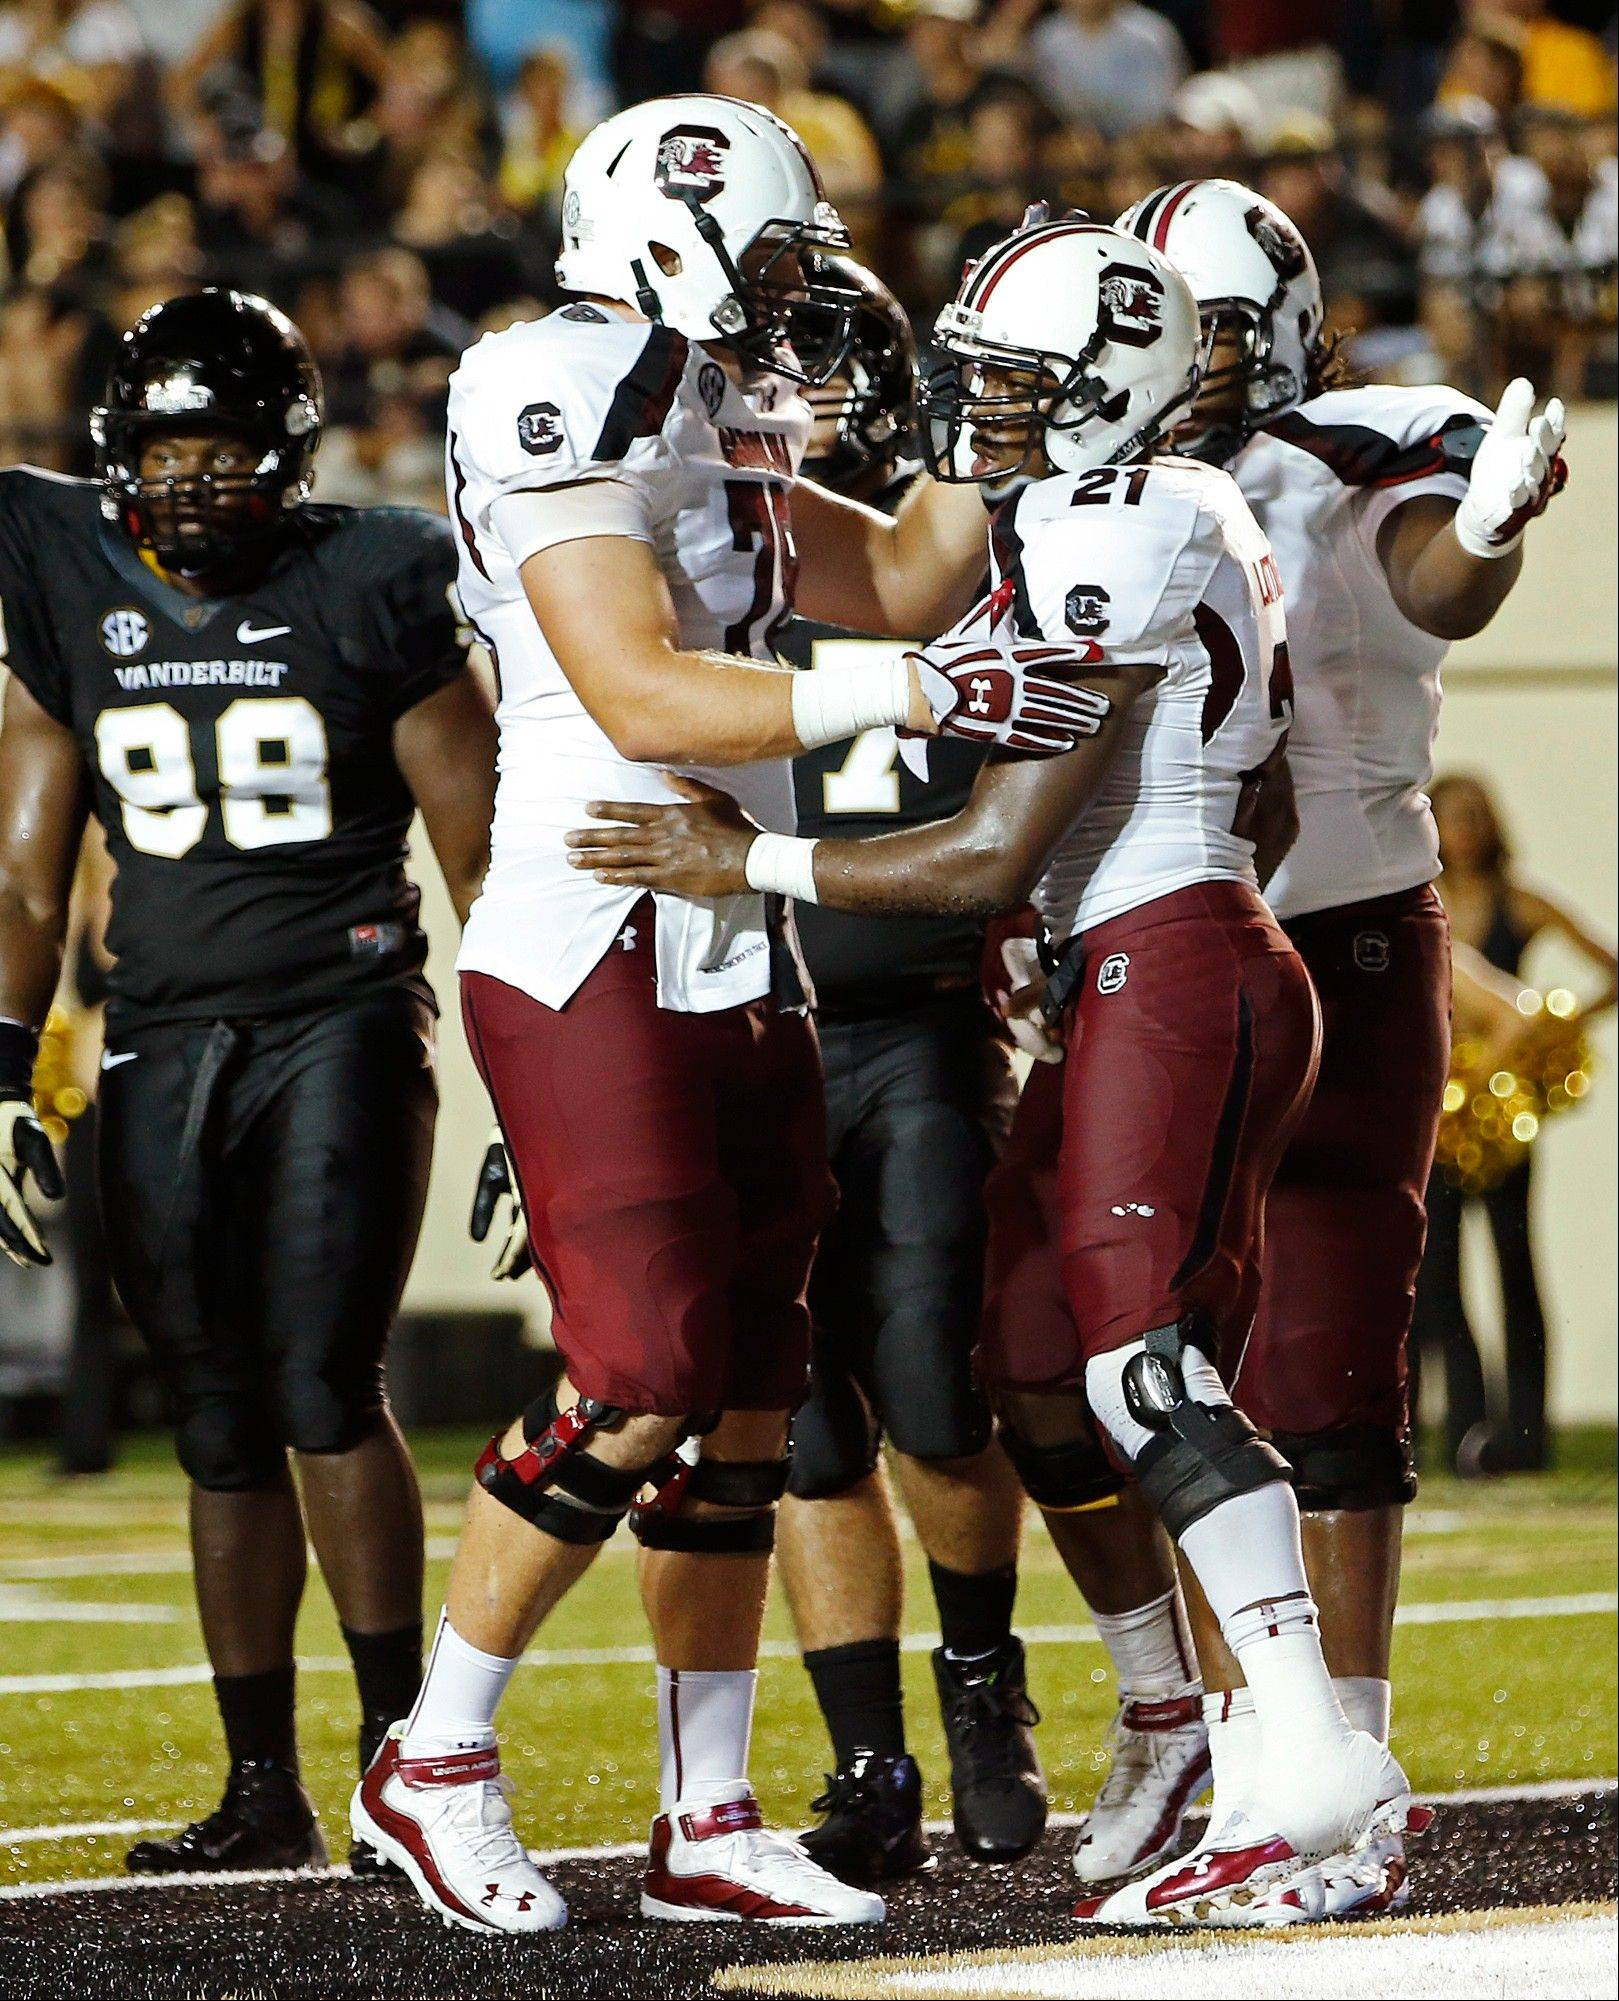 South Carolina's Marcus Lattimore (21) celebrates his game-winning touchdown against Vanderbilt with teammates Thursday in Nashville, Tenn.